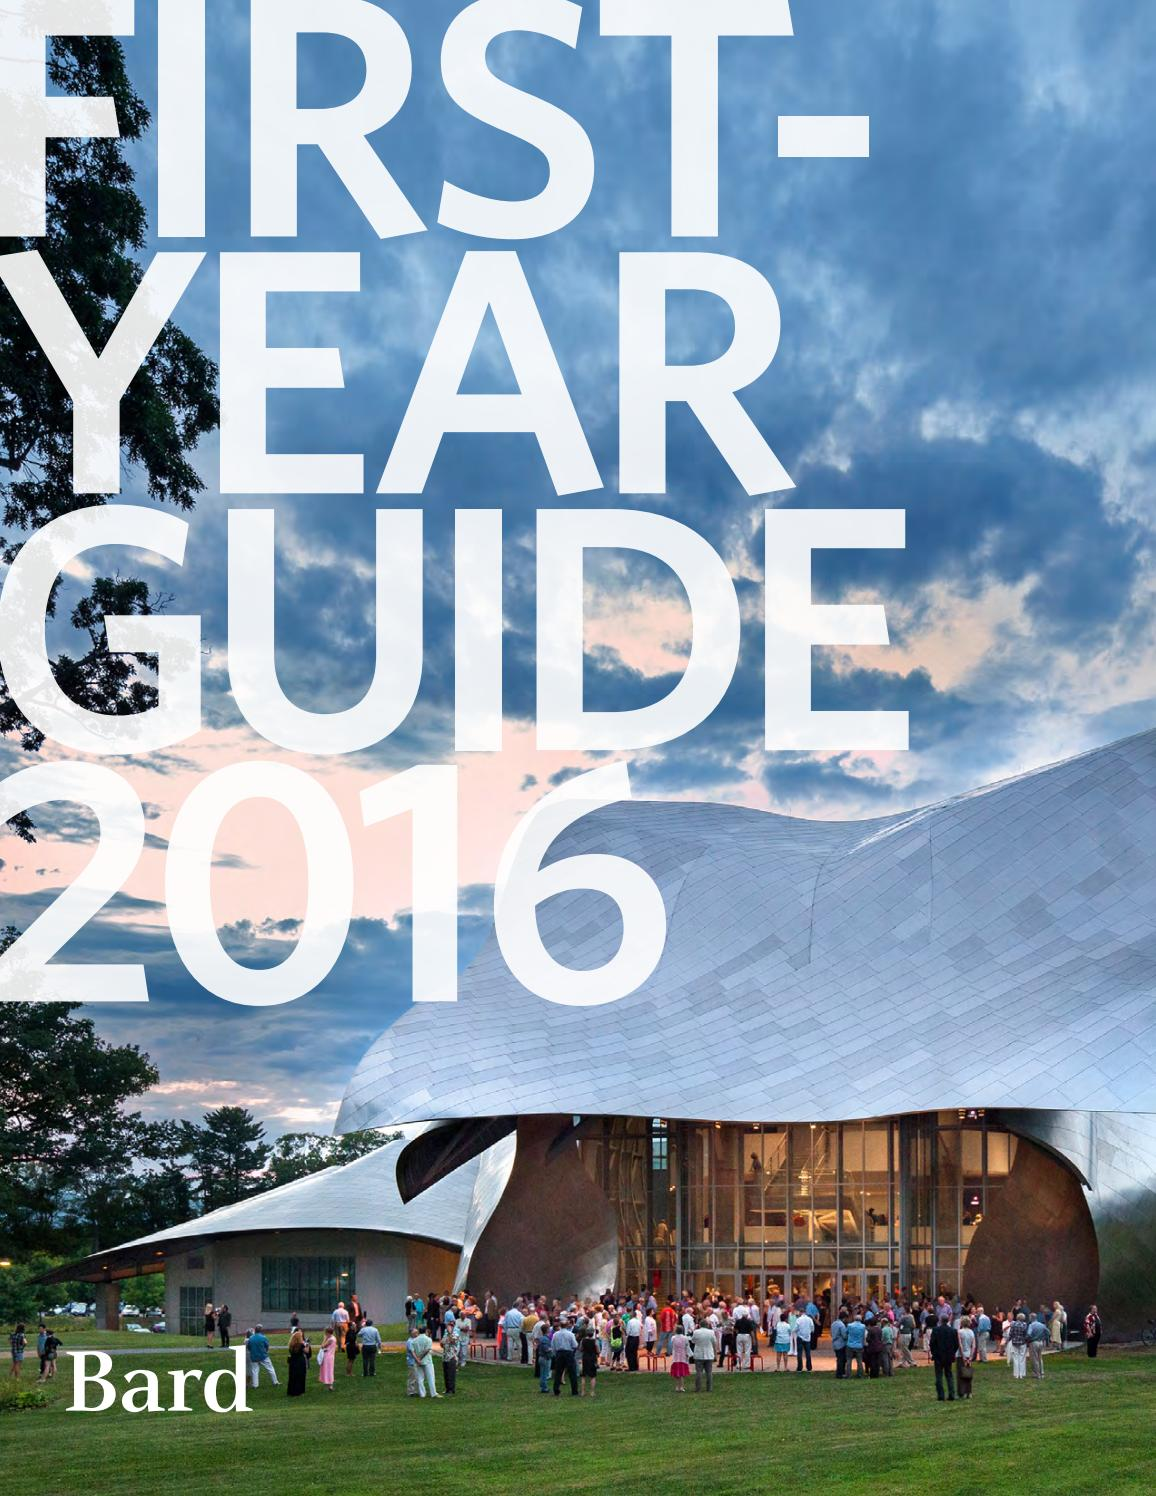 bard college first year students first year guide2016 9 months ago bardcollege